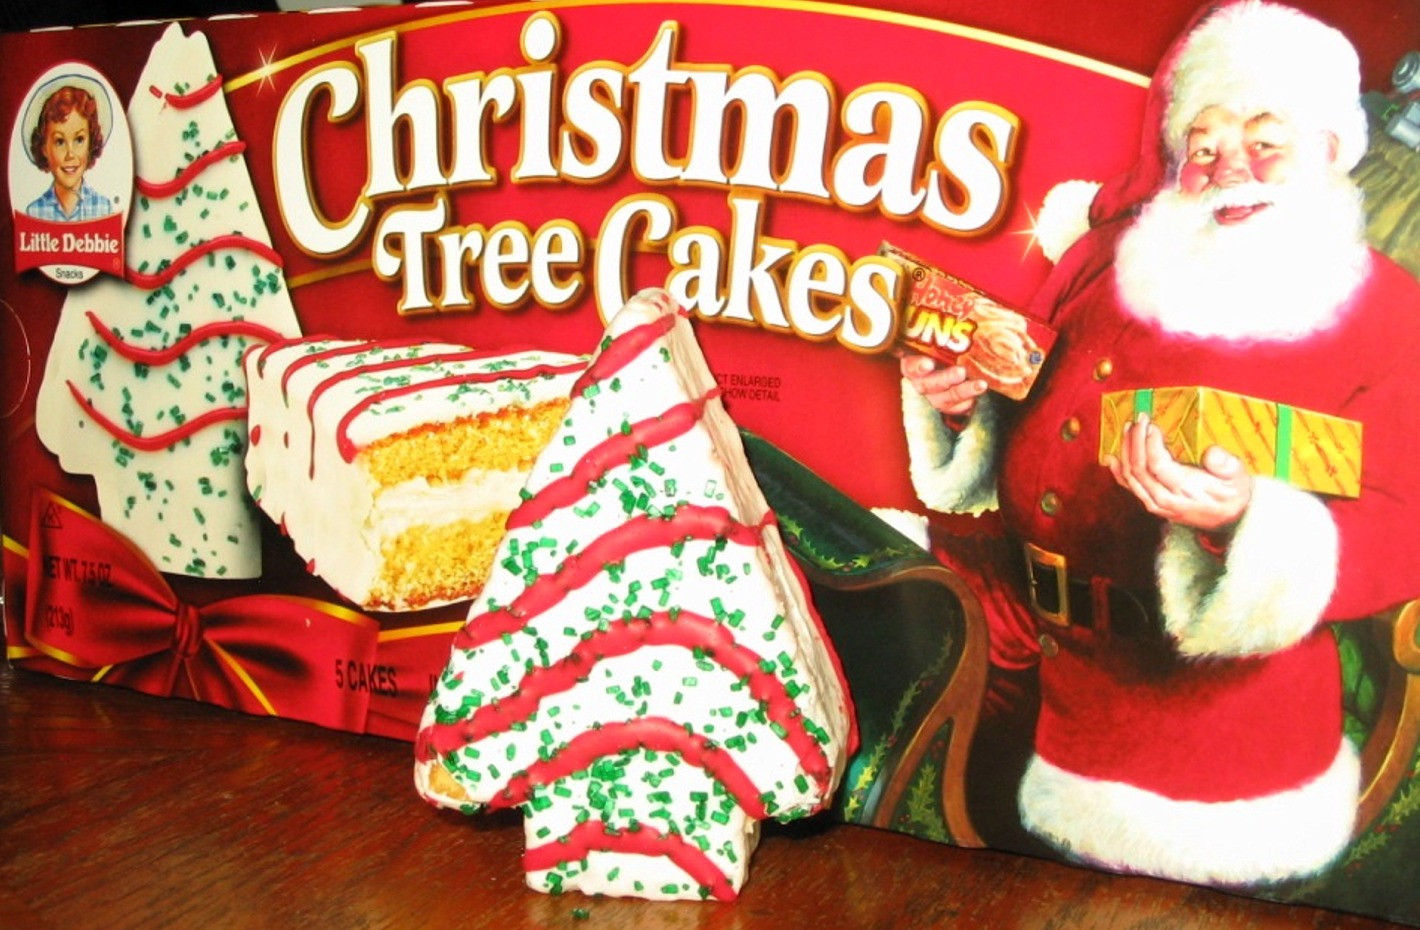 Christmas Tree Snack Cakes  The Holidaze Little Debbie Christmas Tree Cakes